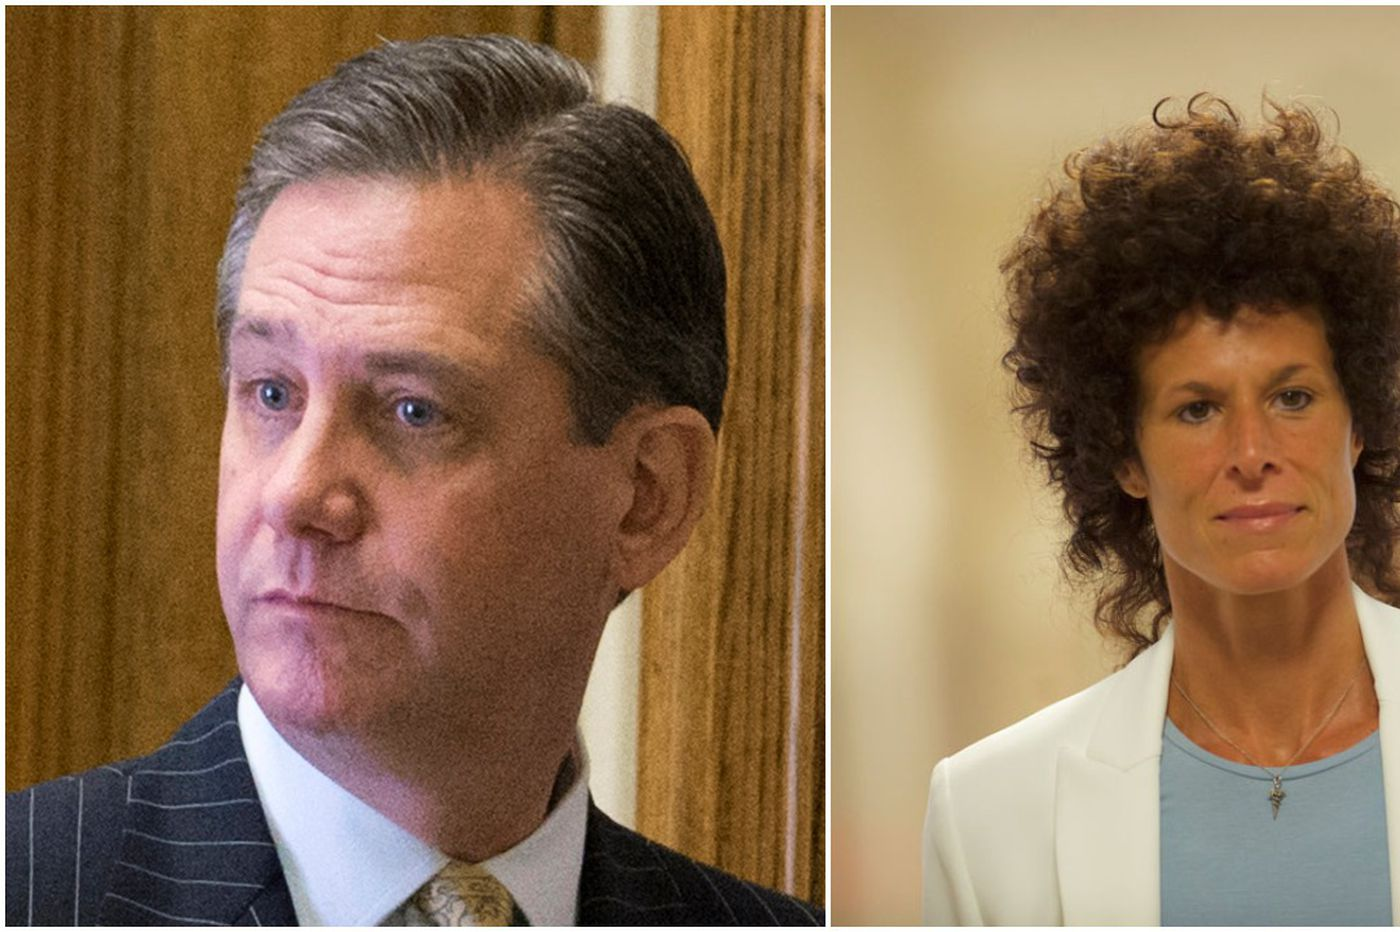 Cosby victim Andrea Constand settles suit she filed against ex-DA Bruce Castor